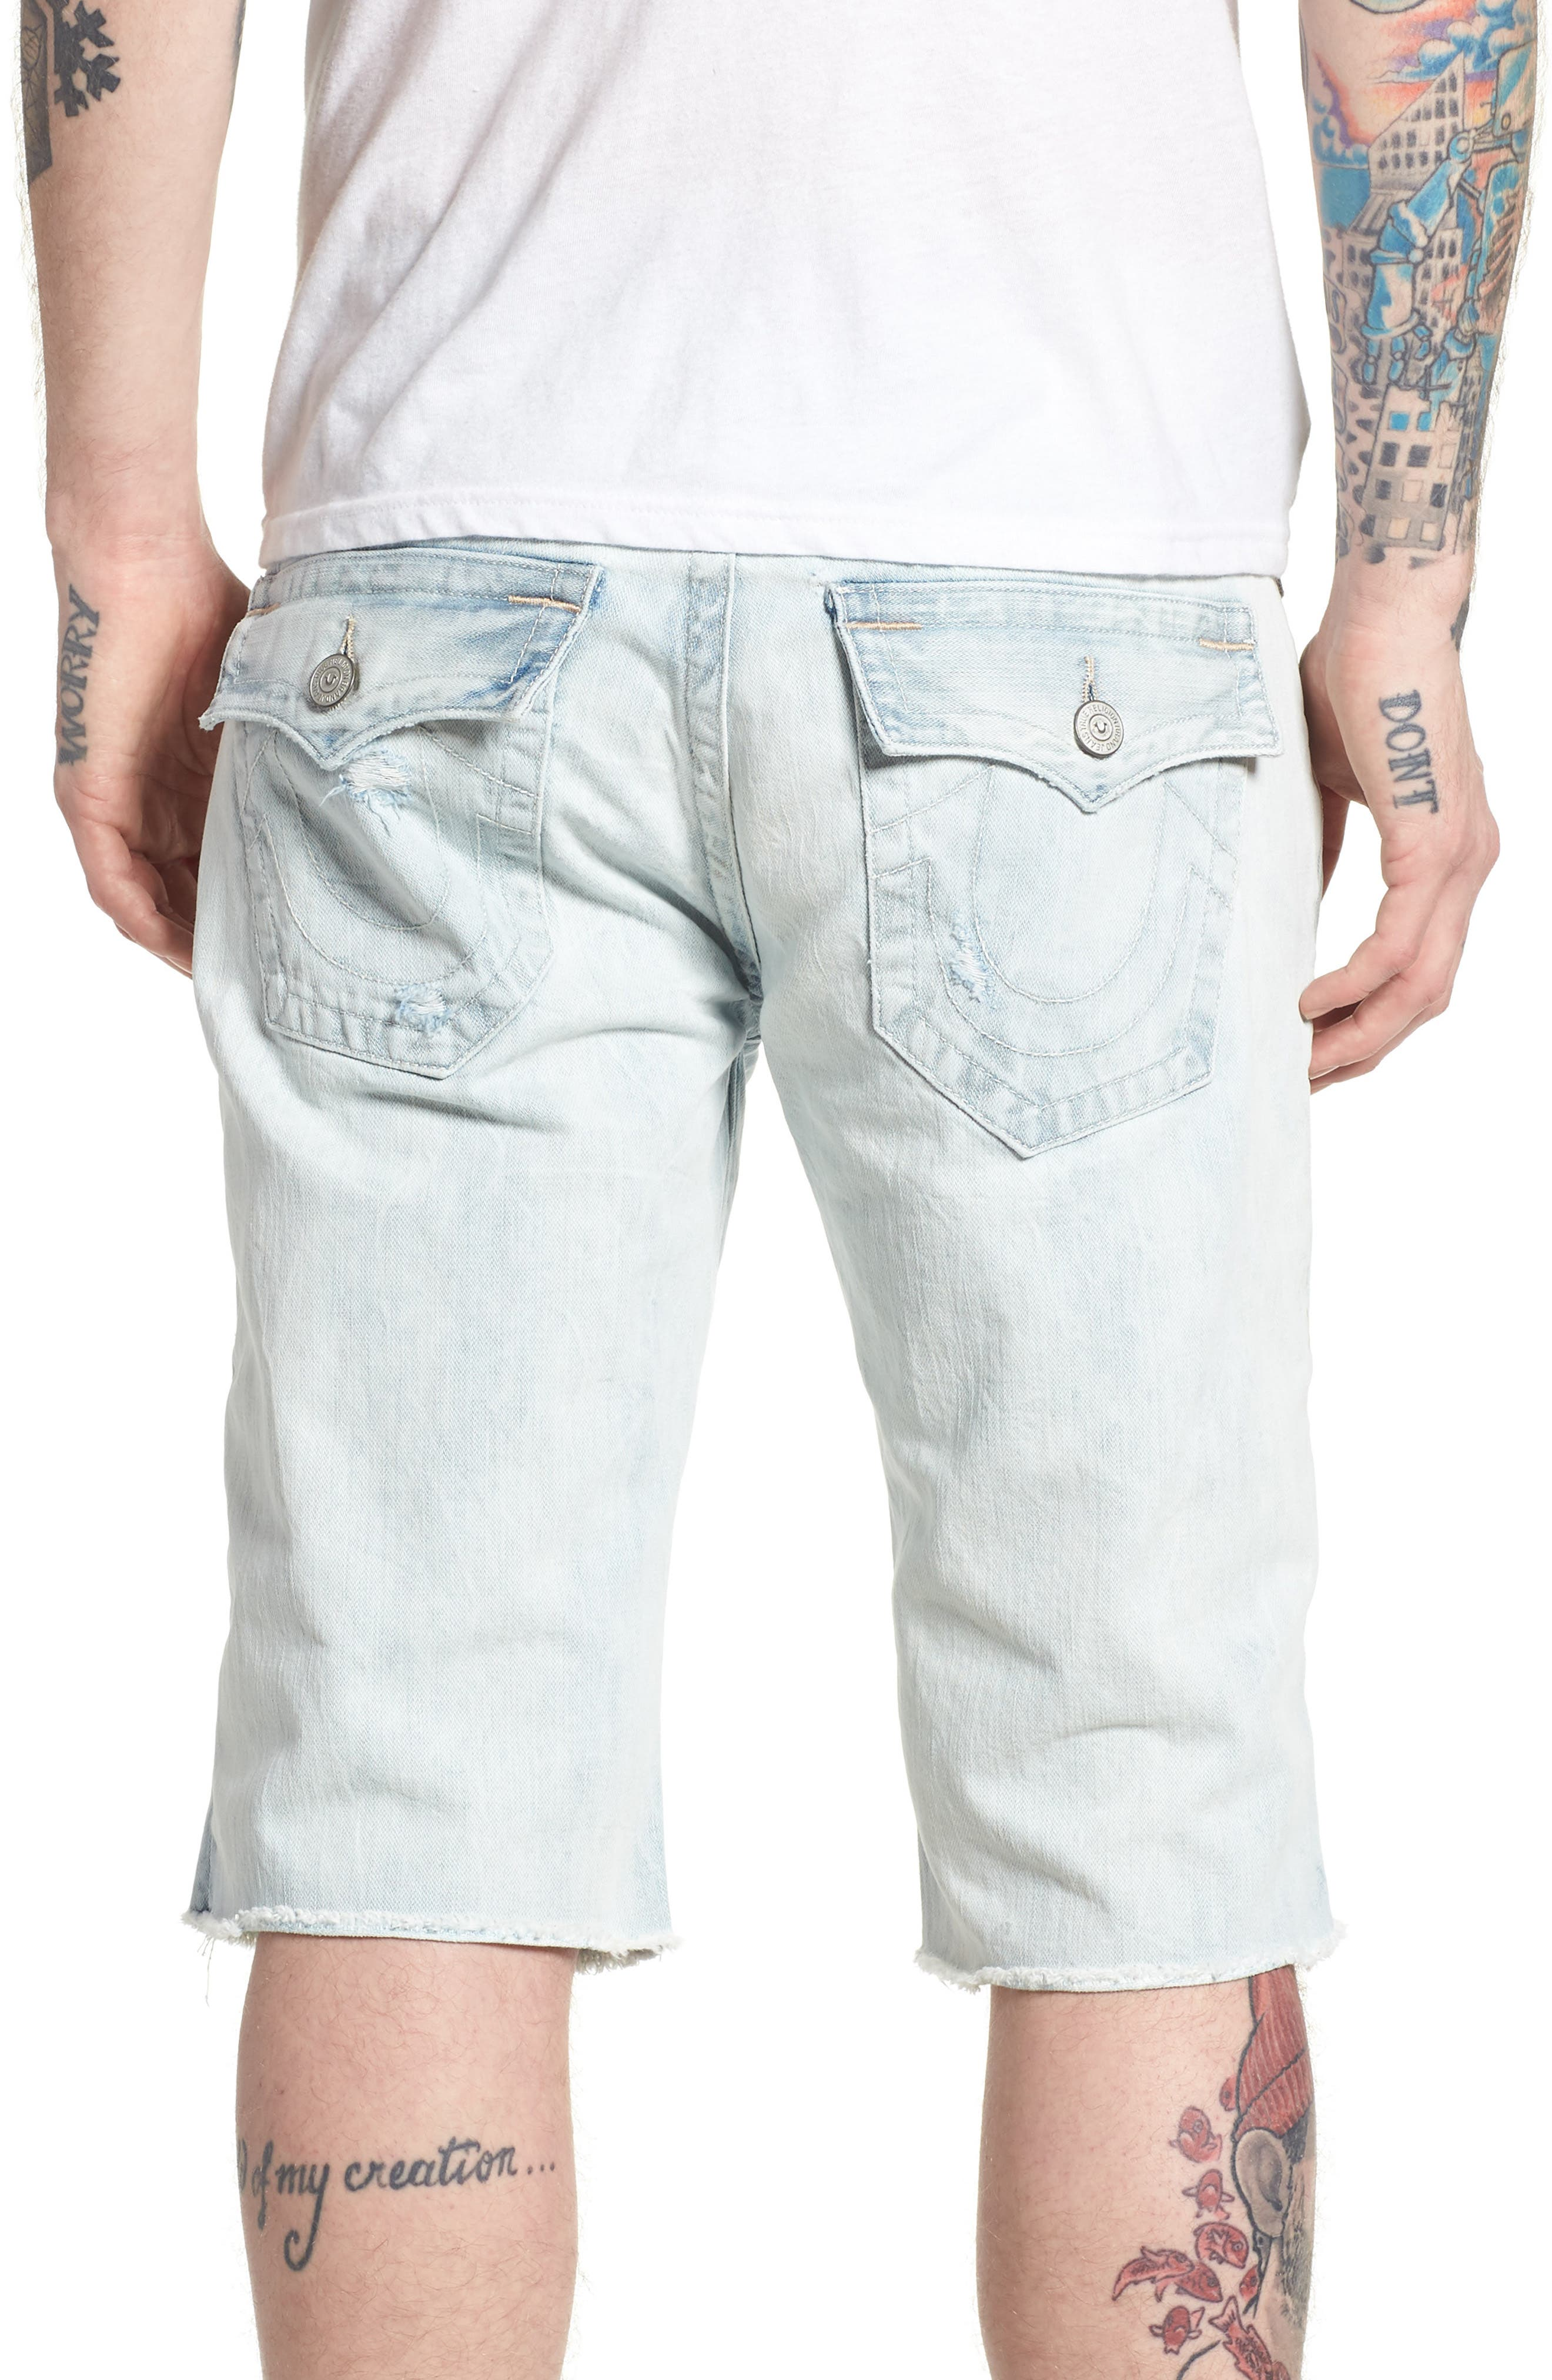 Ricky Relaxed Fit Shorts,                             Alternate thumbnail 2, color,                             401